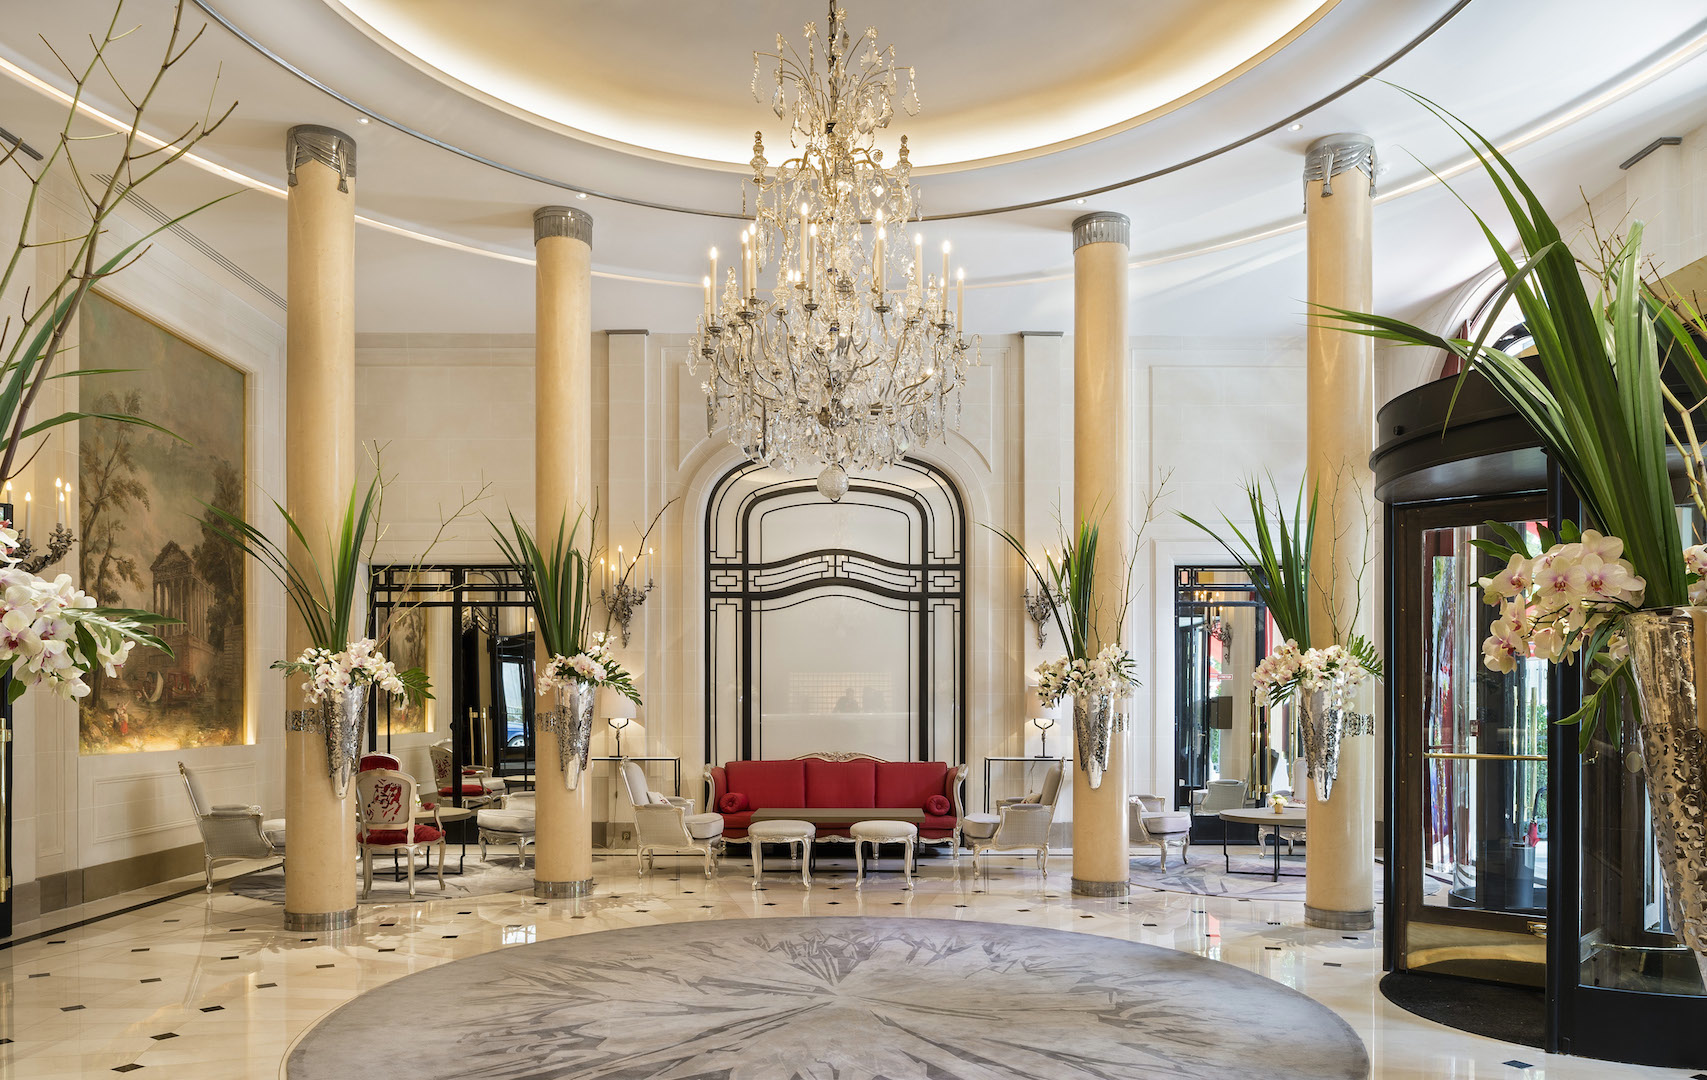 Plaza ath n e the most romantic hotel in parisfashionela for Beautiful hotels